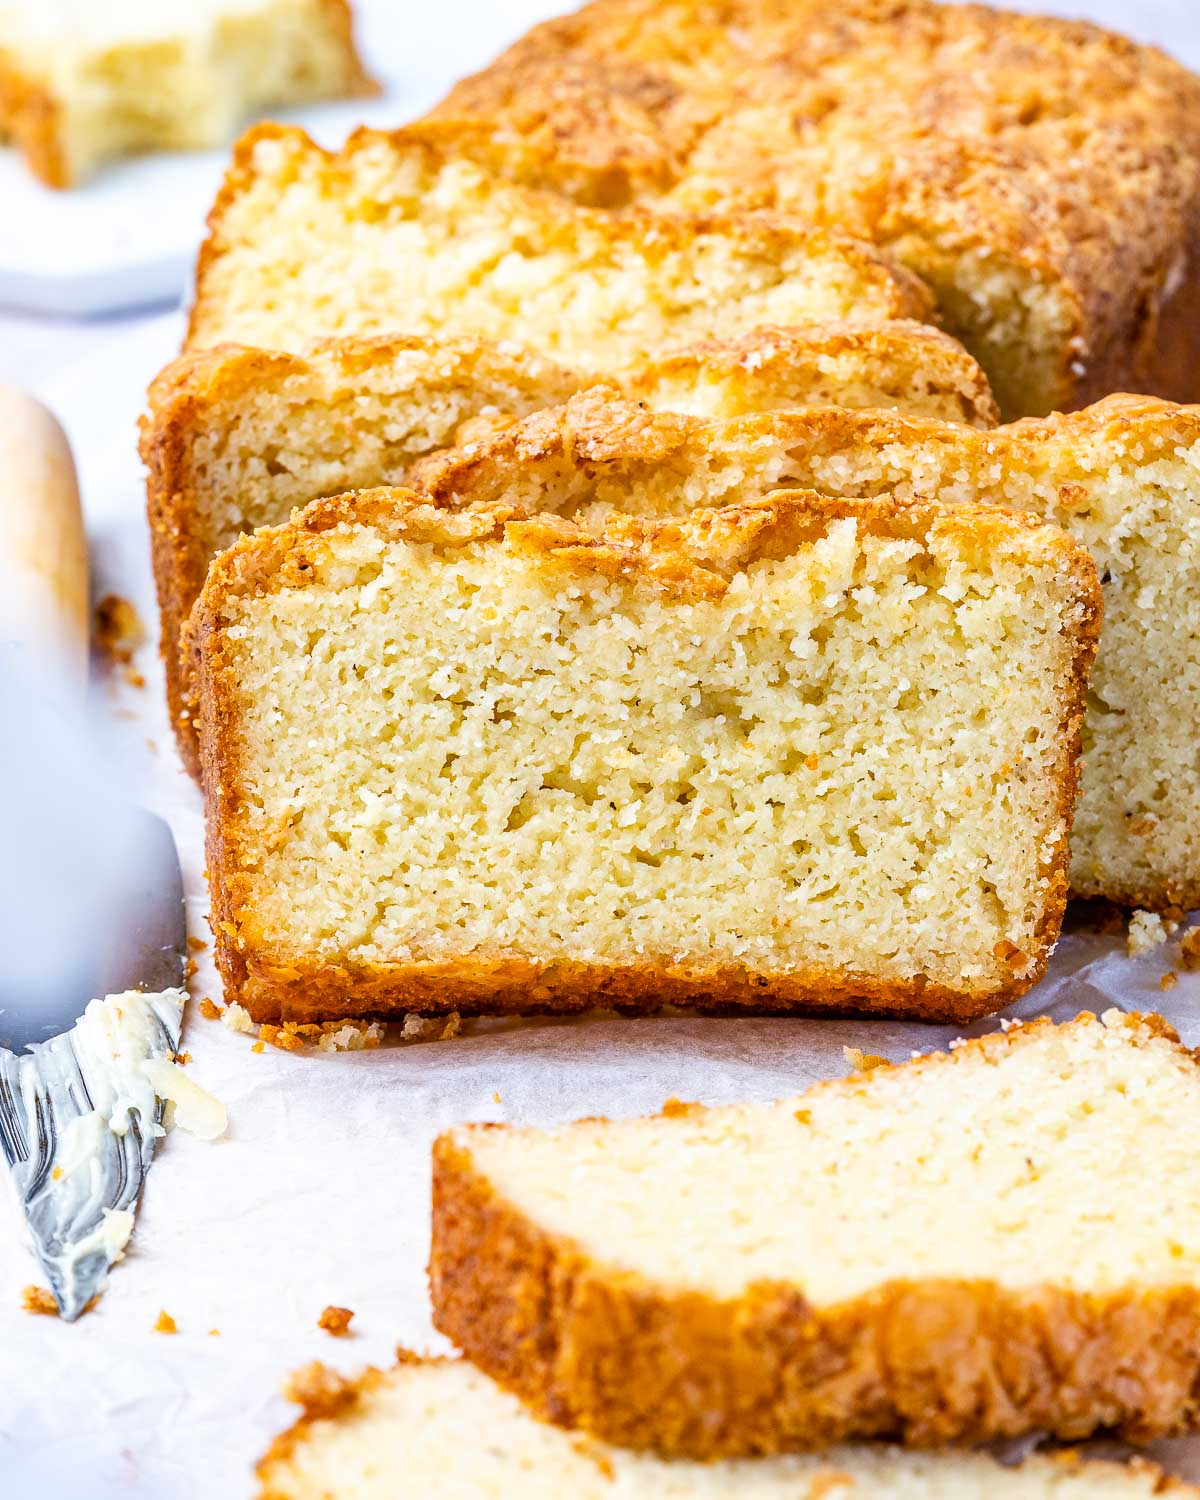 Low Carb Keto Bread Recipe With Almond Flour And Cheese - 109